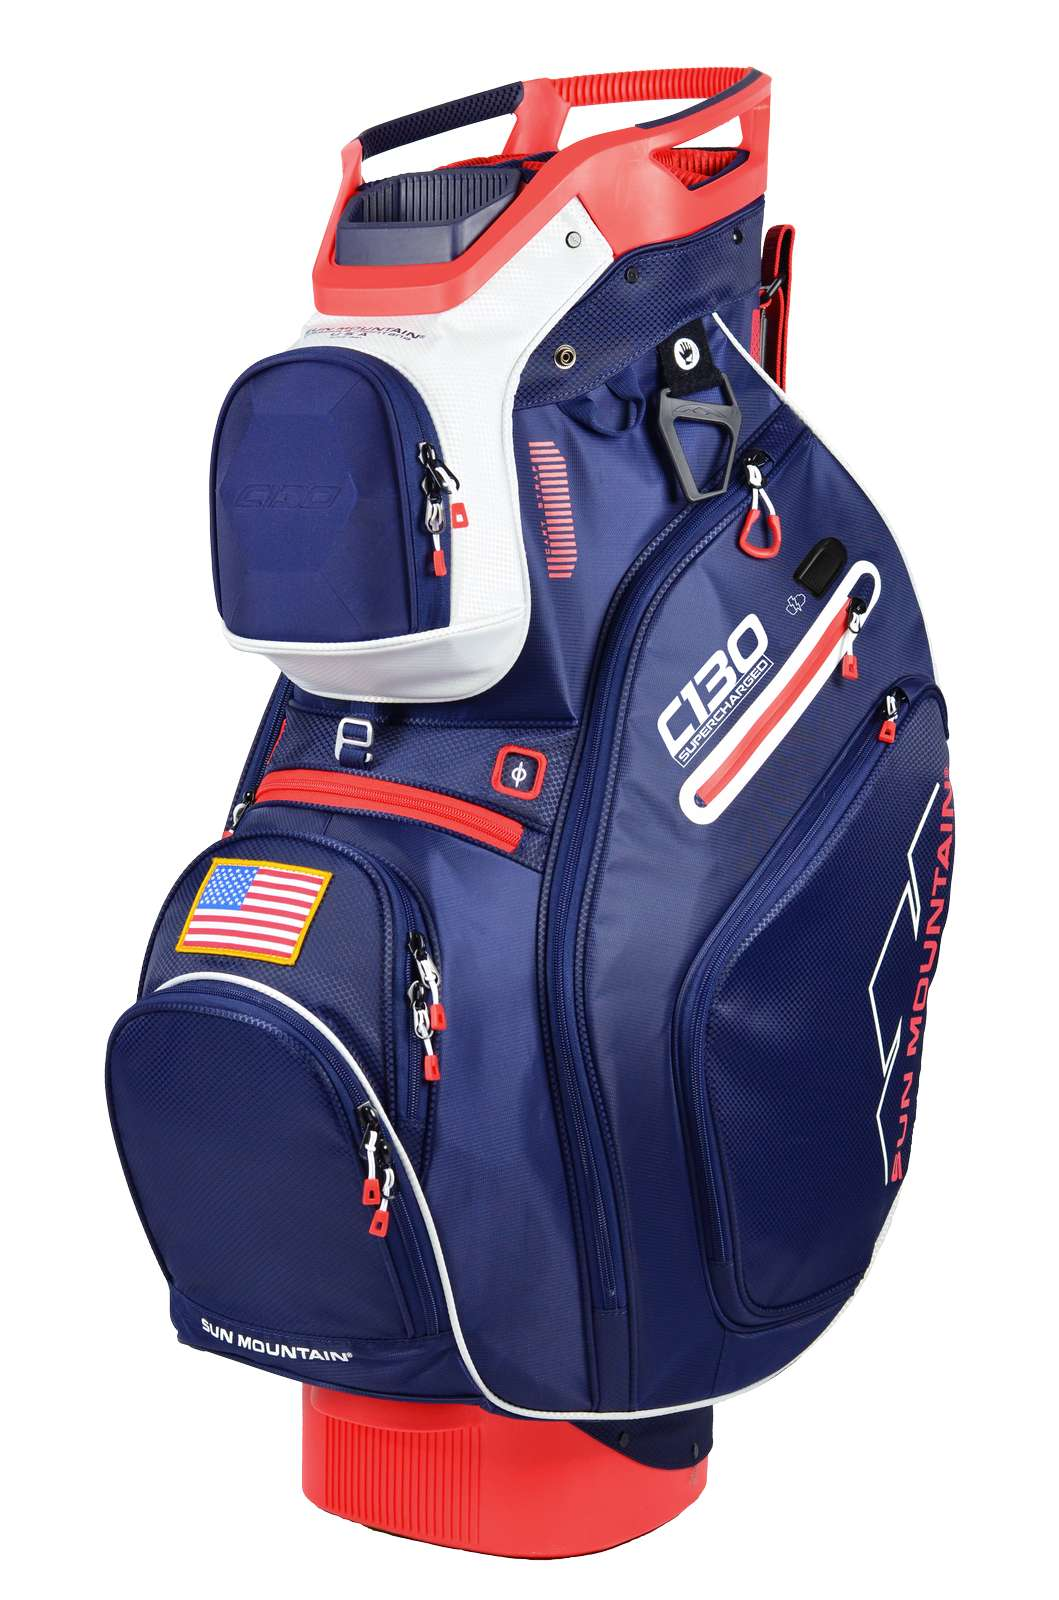 Sun Mountain C130 Supercharged Cart Bag White Red